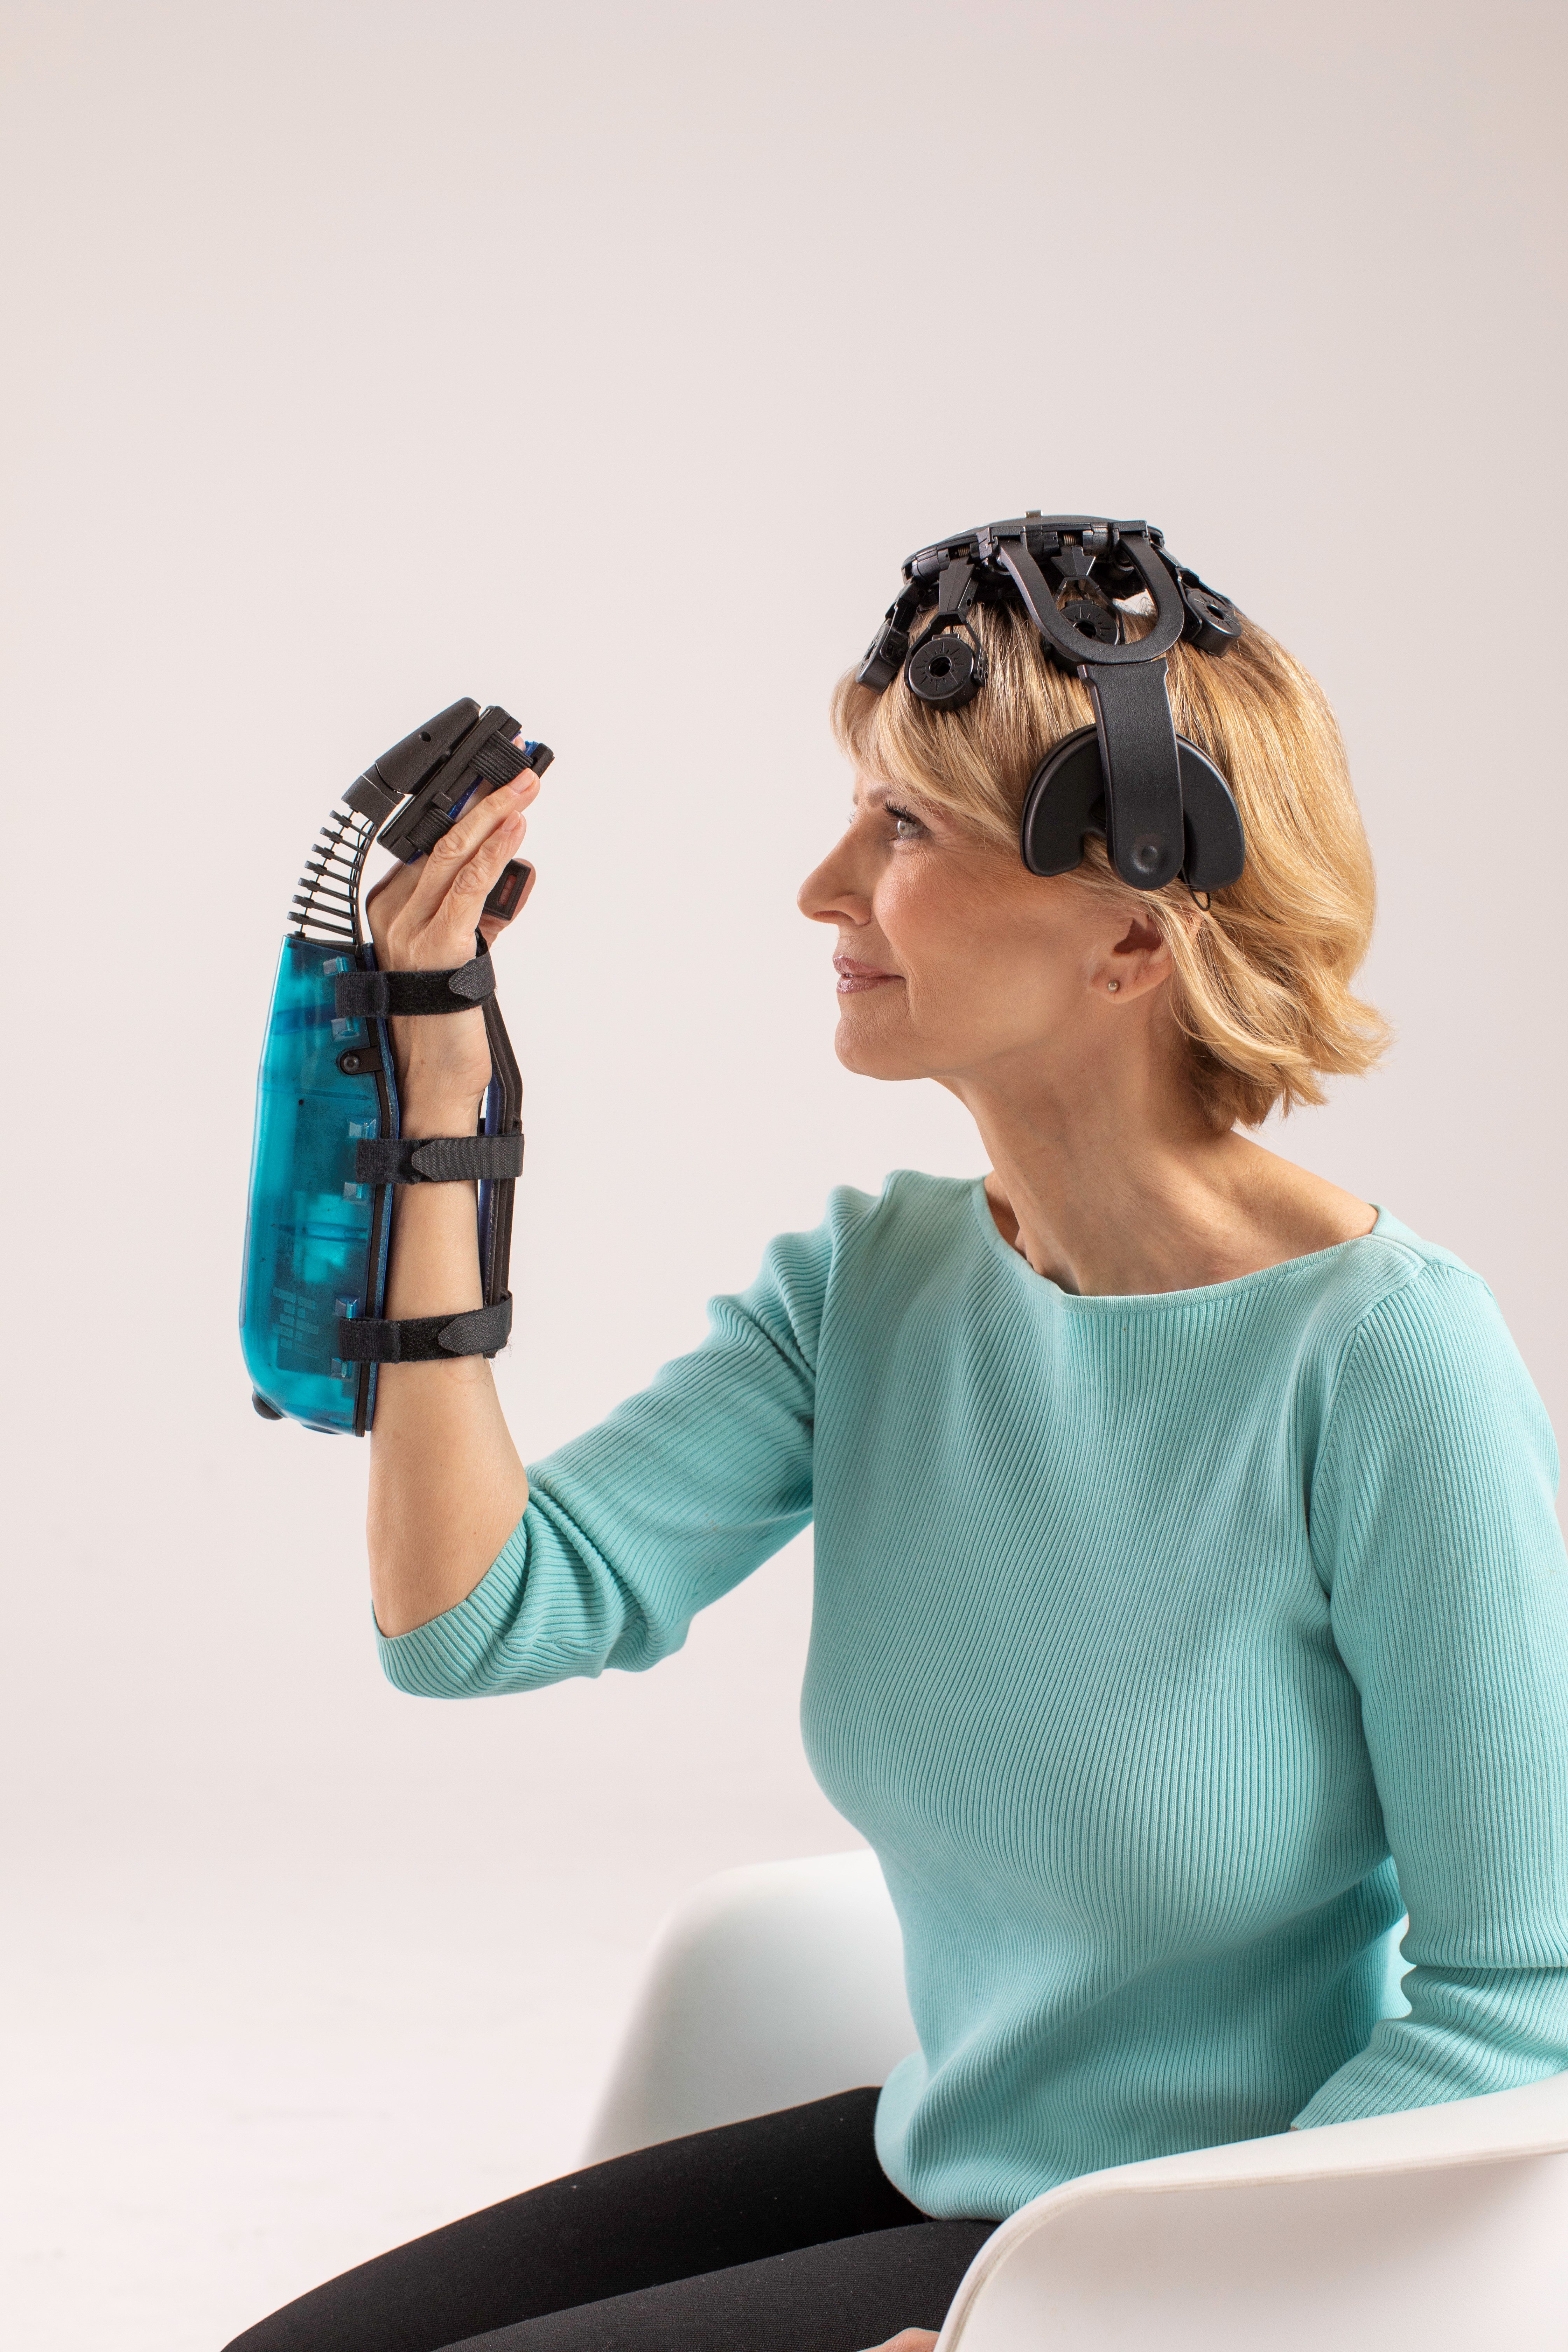 IpsiHand includes a wearable robotic exoskeleton that is worn over the patient's hand and wrist, a tablet computer, and an EEG-based biometric headset.